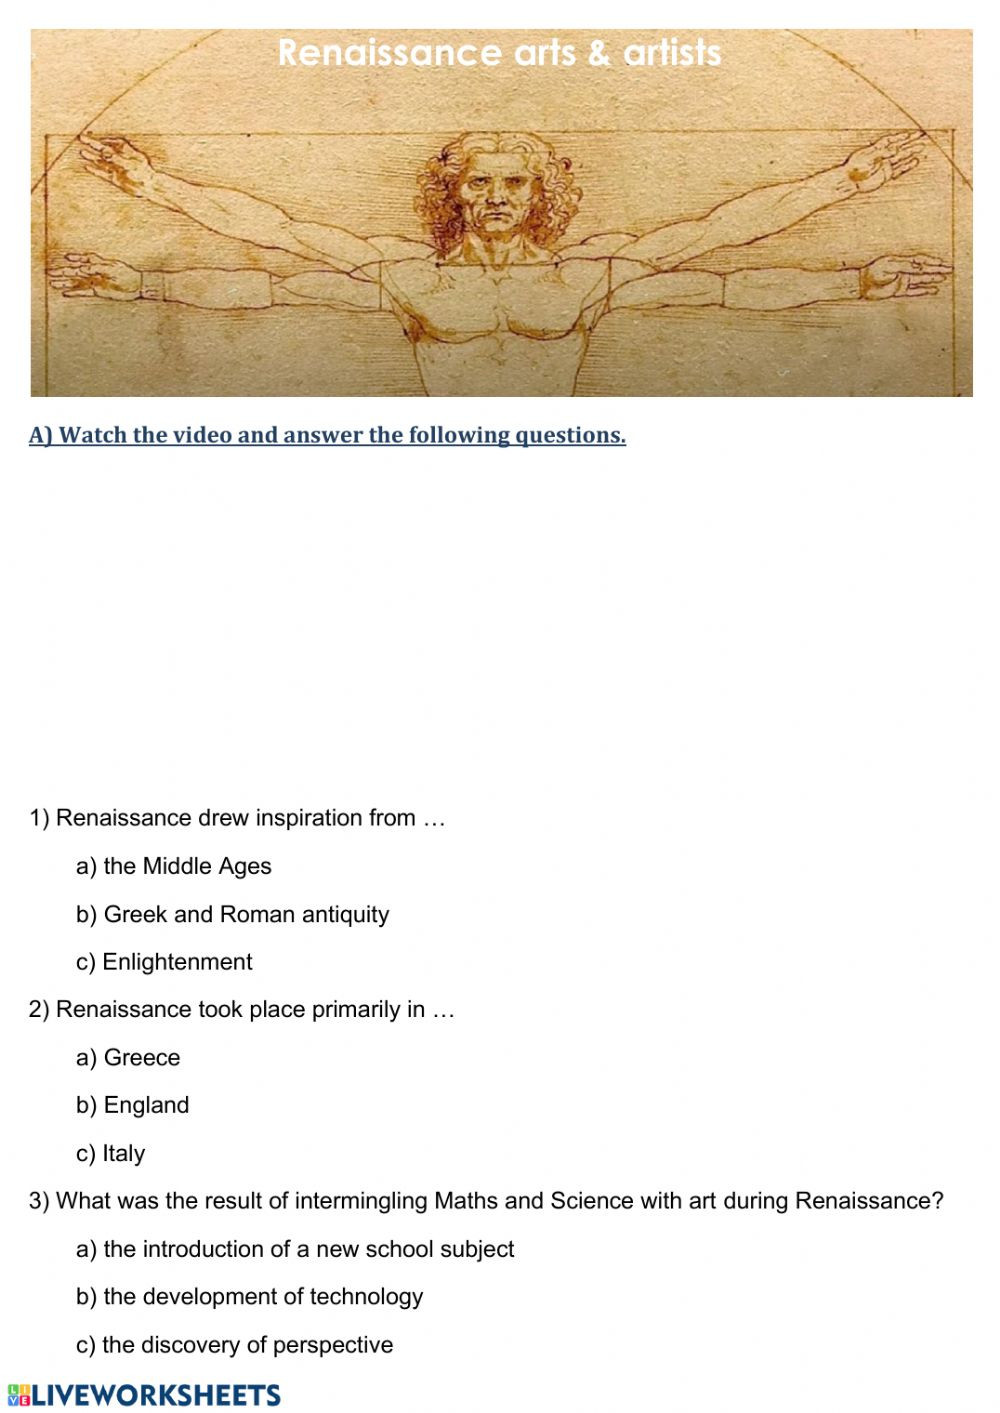 Renaissance Worksheets for Middle School Renaissance Arts and Artists Interactive Worksheet